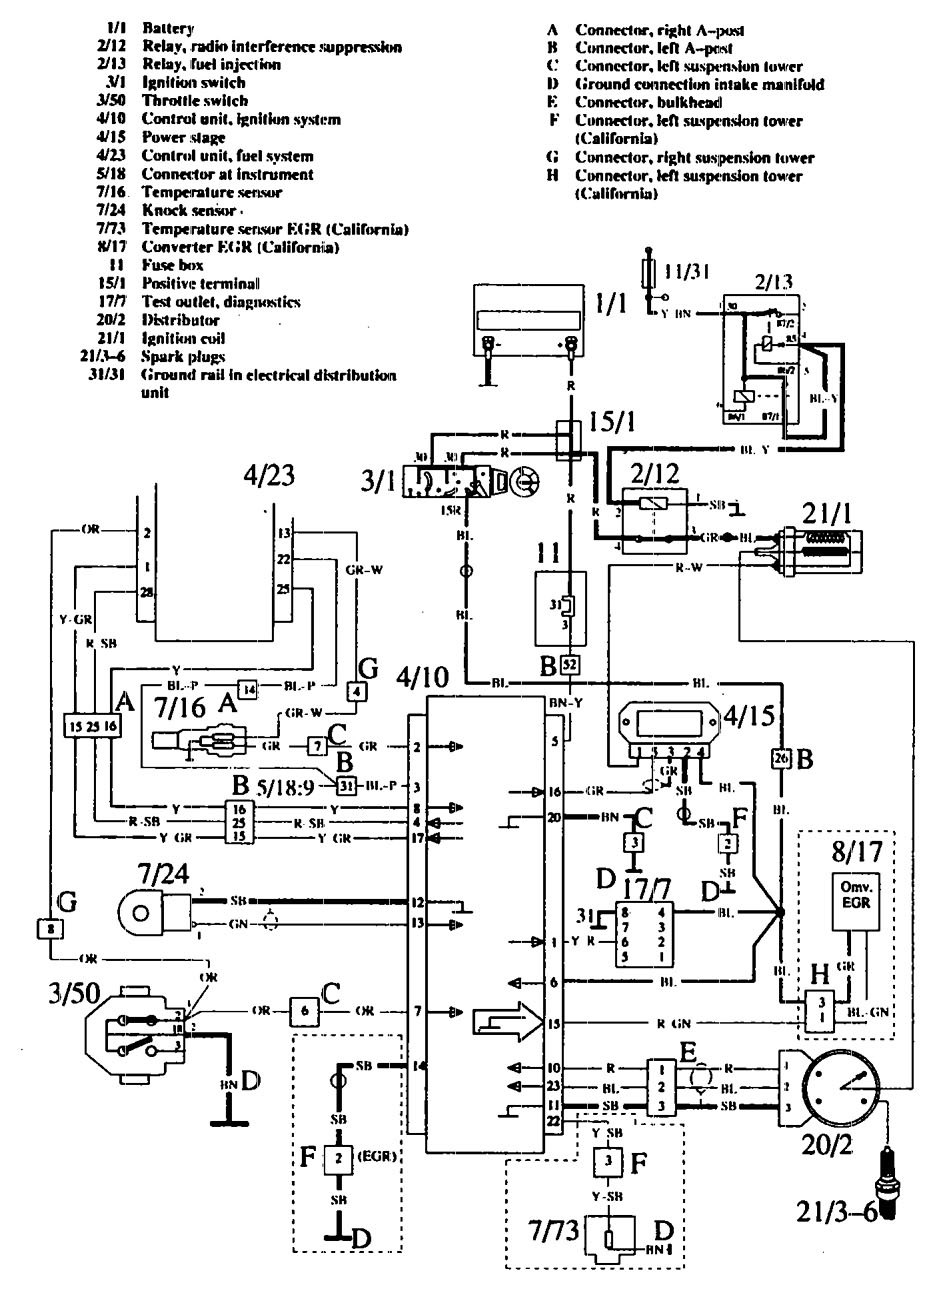 volvo ac wiring diagram volvo 760 engine diagram ford 2005 4 2 spark plug wire diagram  volvo 760 engine diagram ford 2005 4 2